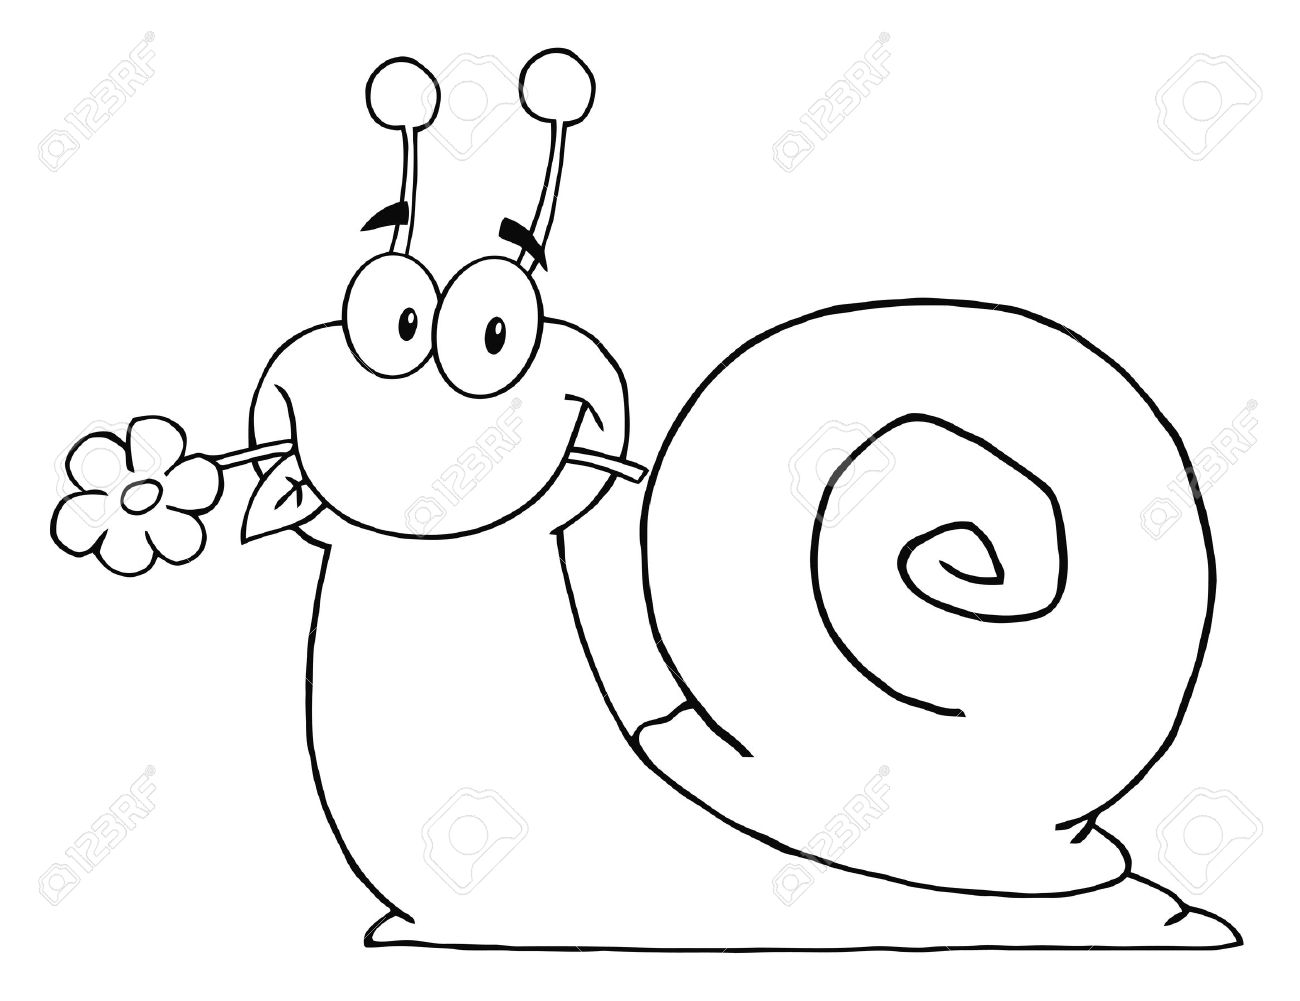 outlined cartoon snail with a flower in its mouth royalty free